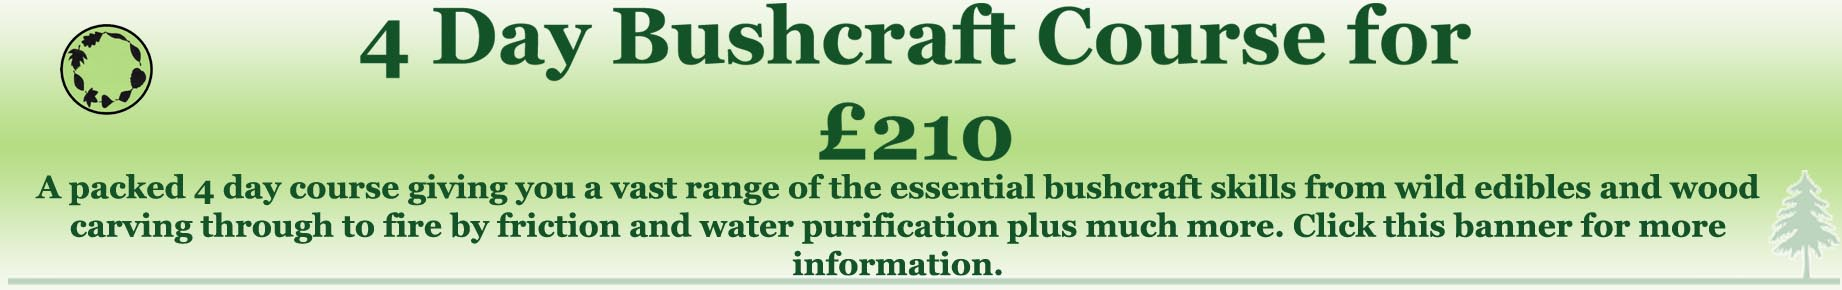 budget bushcraft course